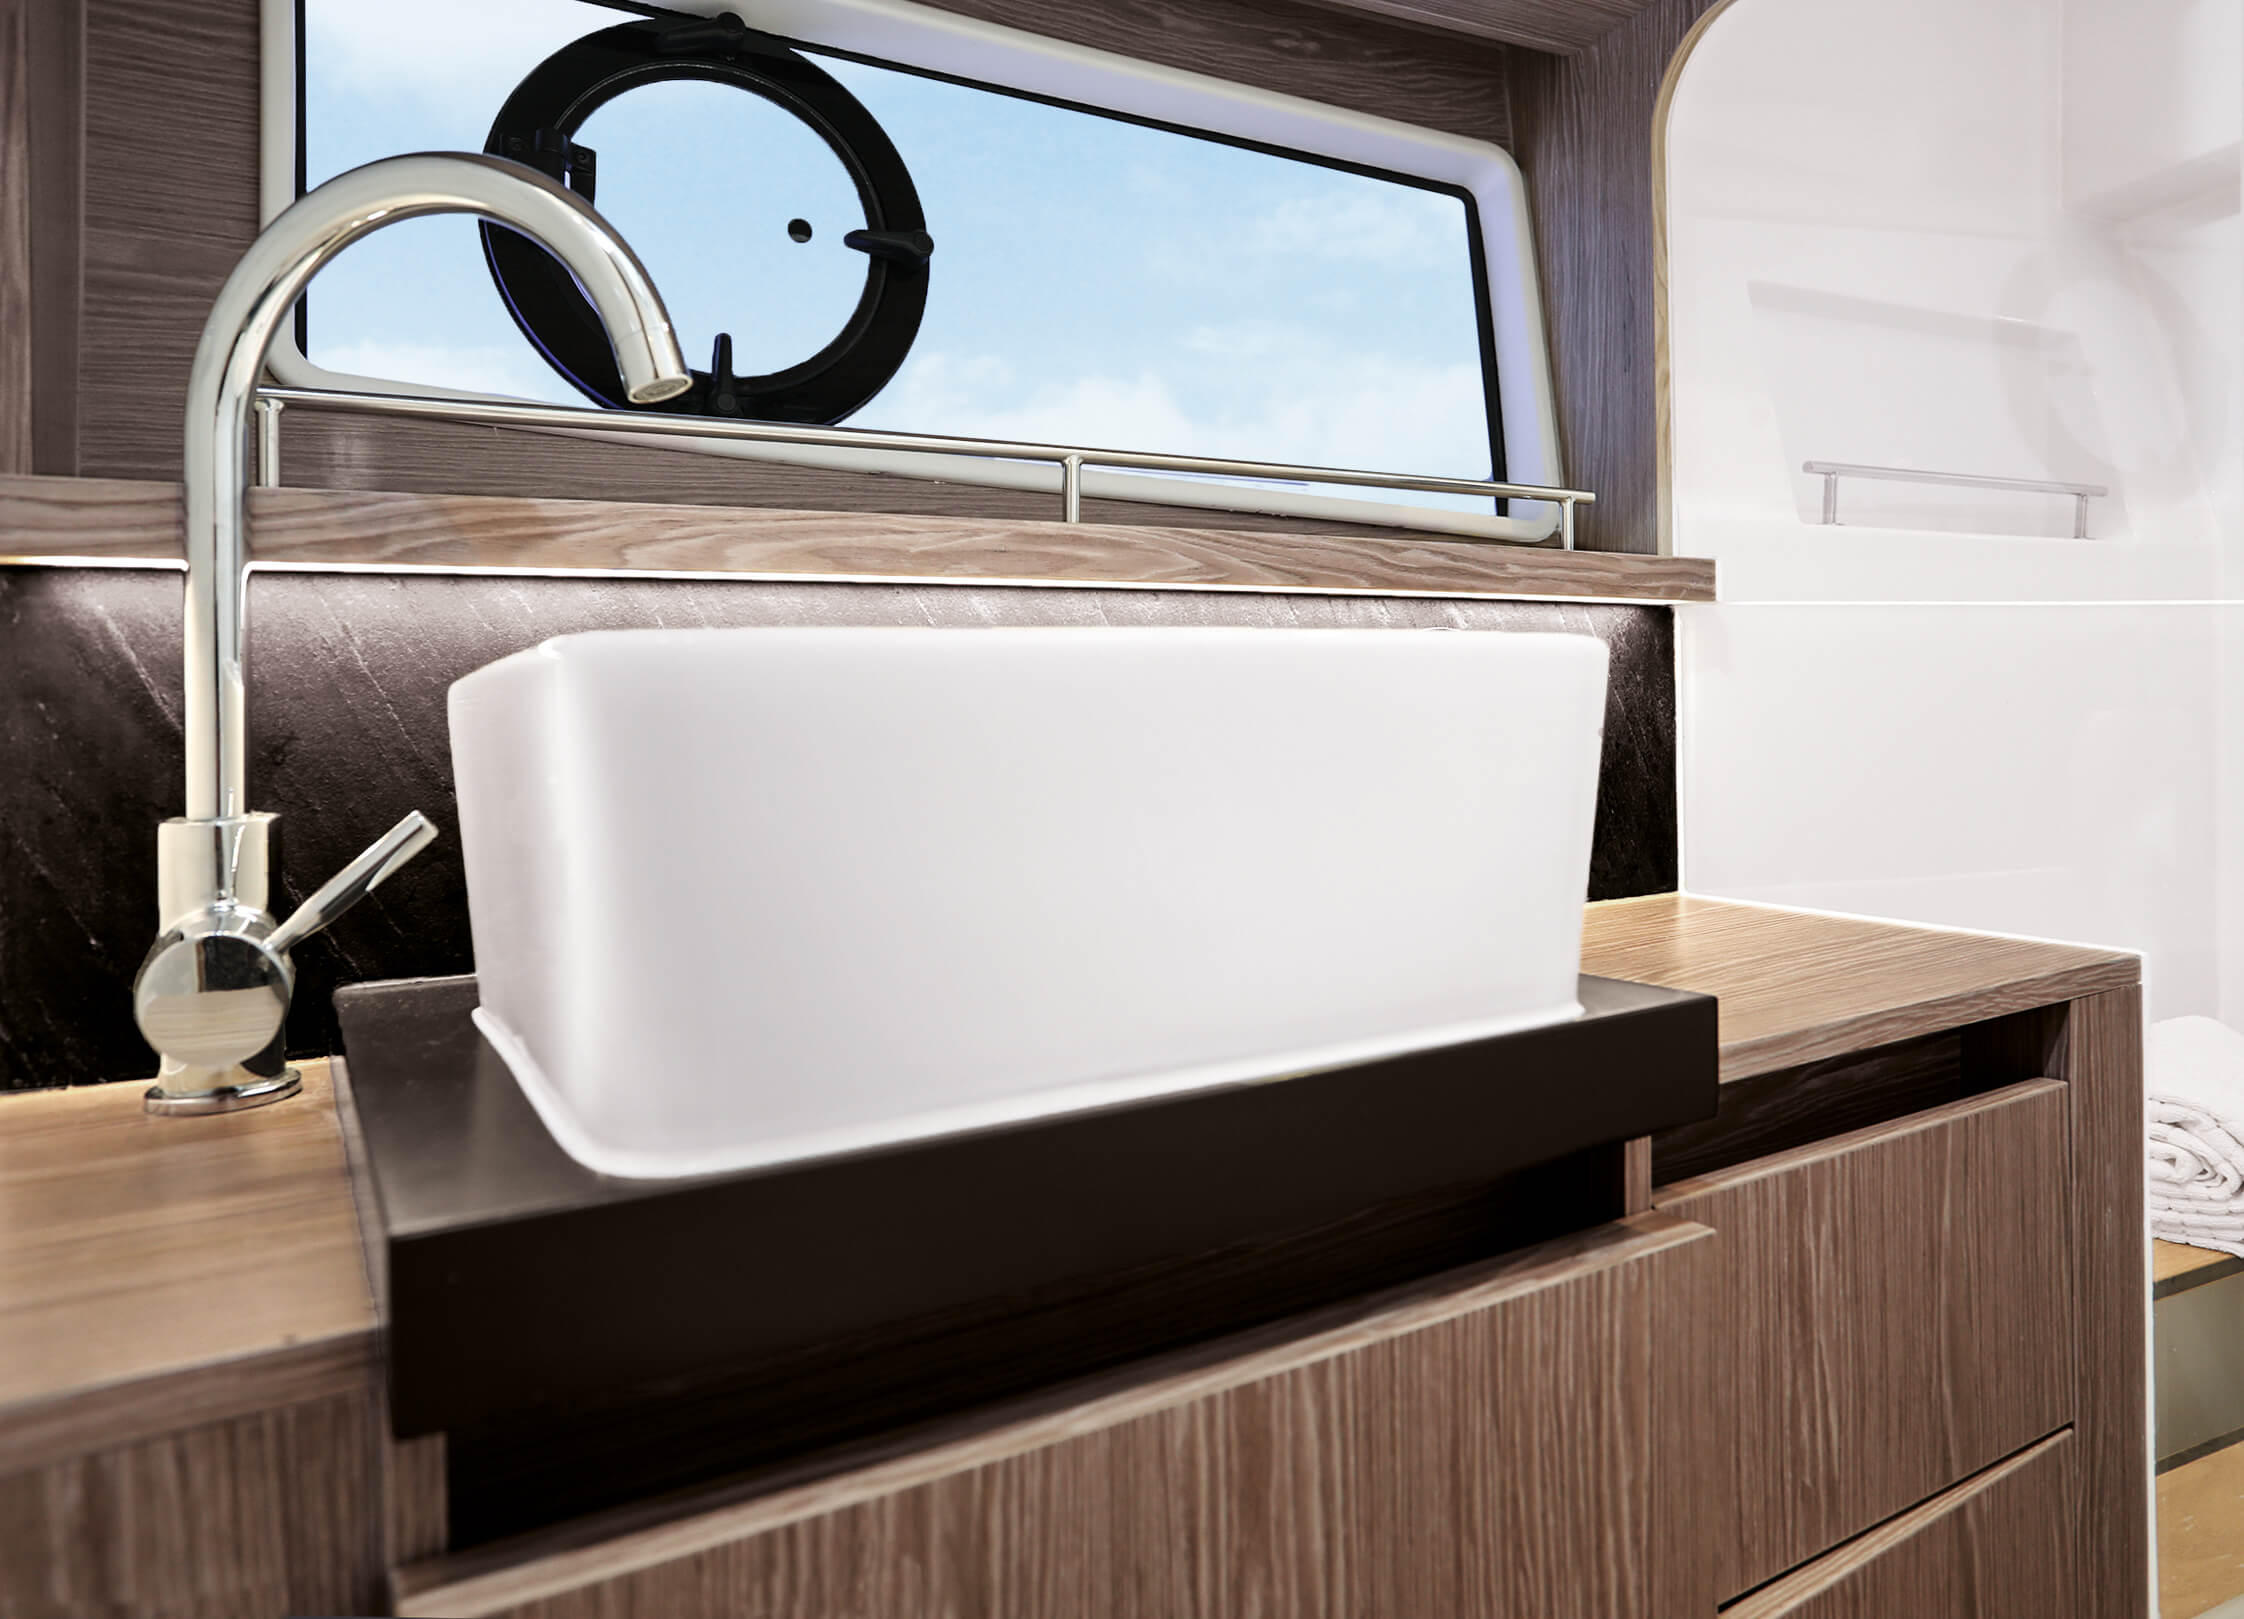 Sealine F430 Interno vista | Fully equipped head with separate shower stall with handheld shower, and comfort seat with wood cover. | Sealine